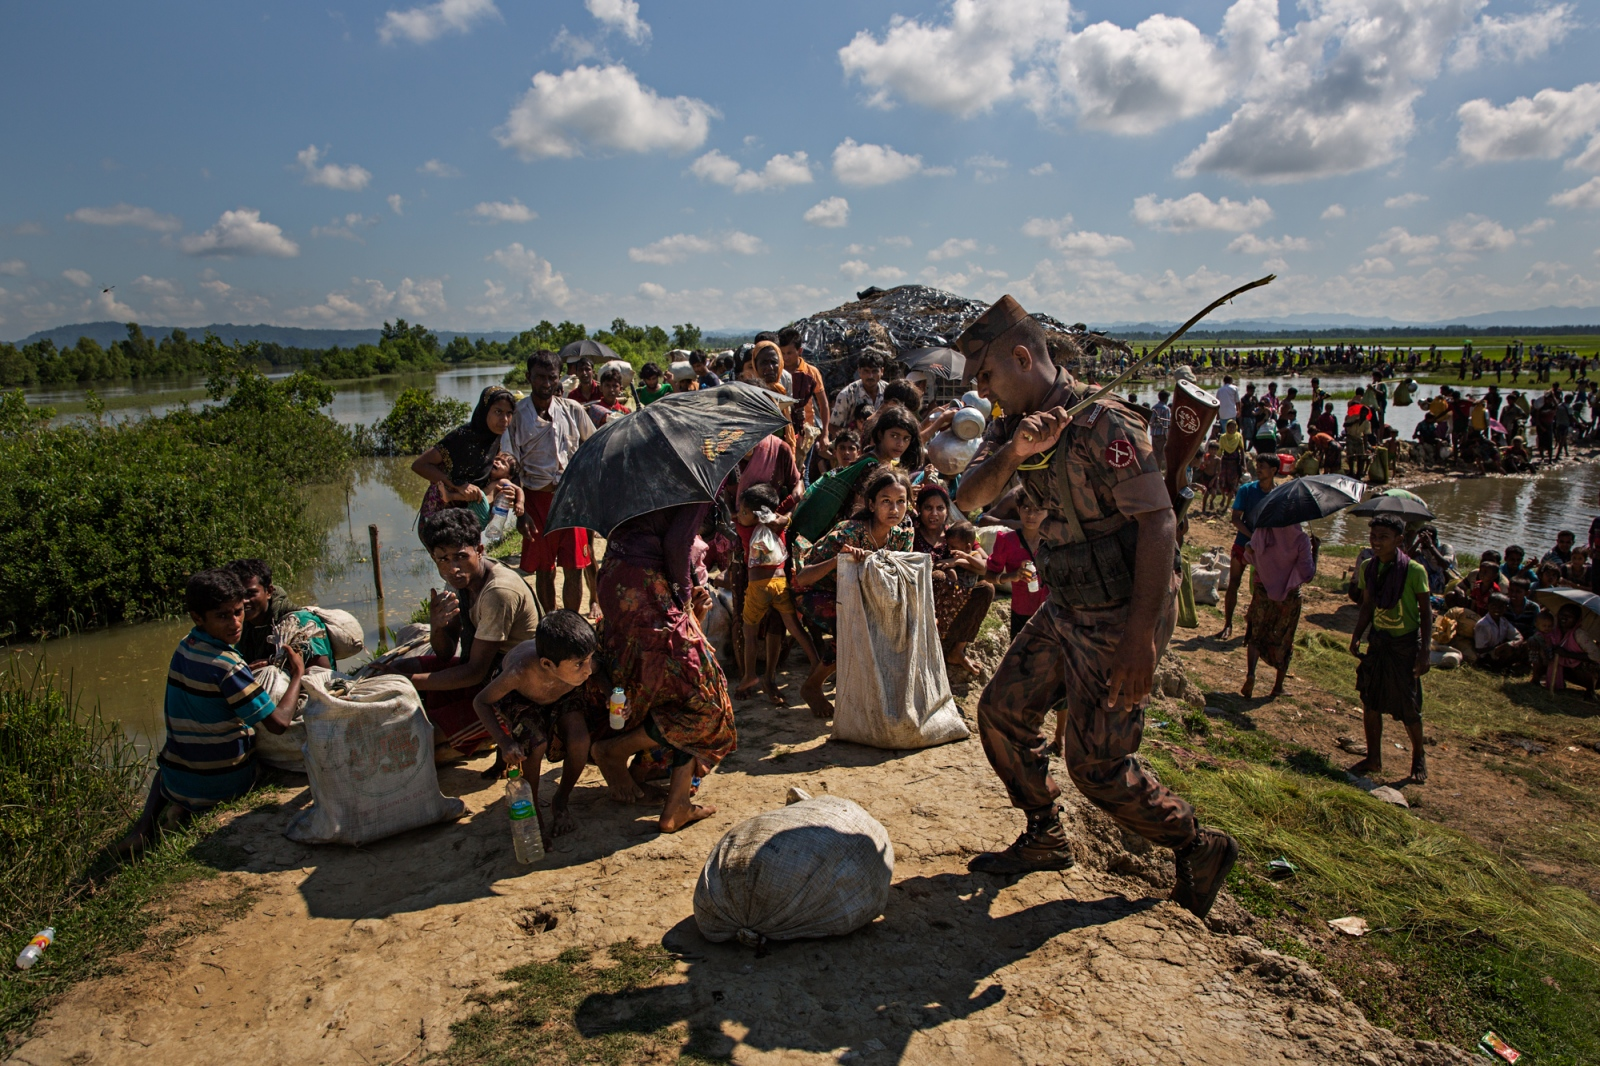 Rohingya refugees are kept in line with a stick wielded by a Border Guard Bangladesh (BGB) member after crossing the Naf River from Myanmar into Bangladesh. Many had been walking for weeks and were suffering from malnutrition and dehydration. Temperatures soared to well over 100 degrees farenheit.